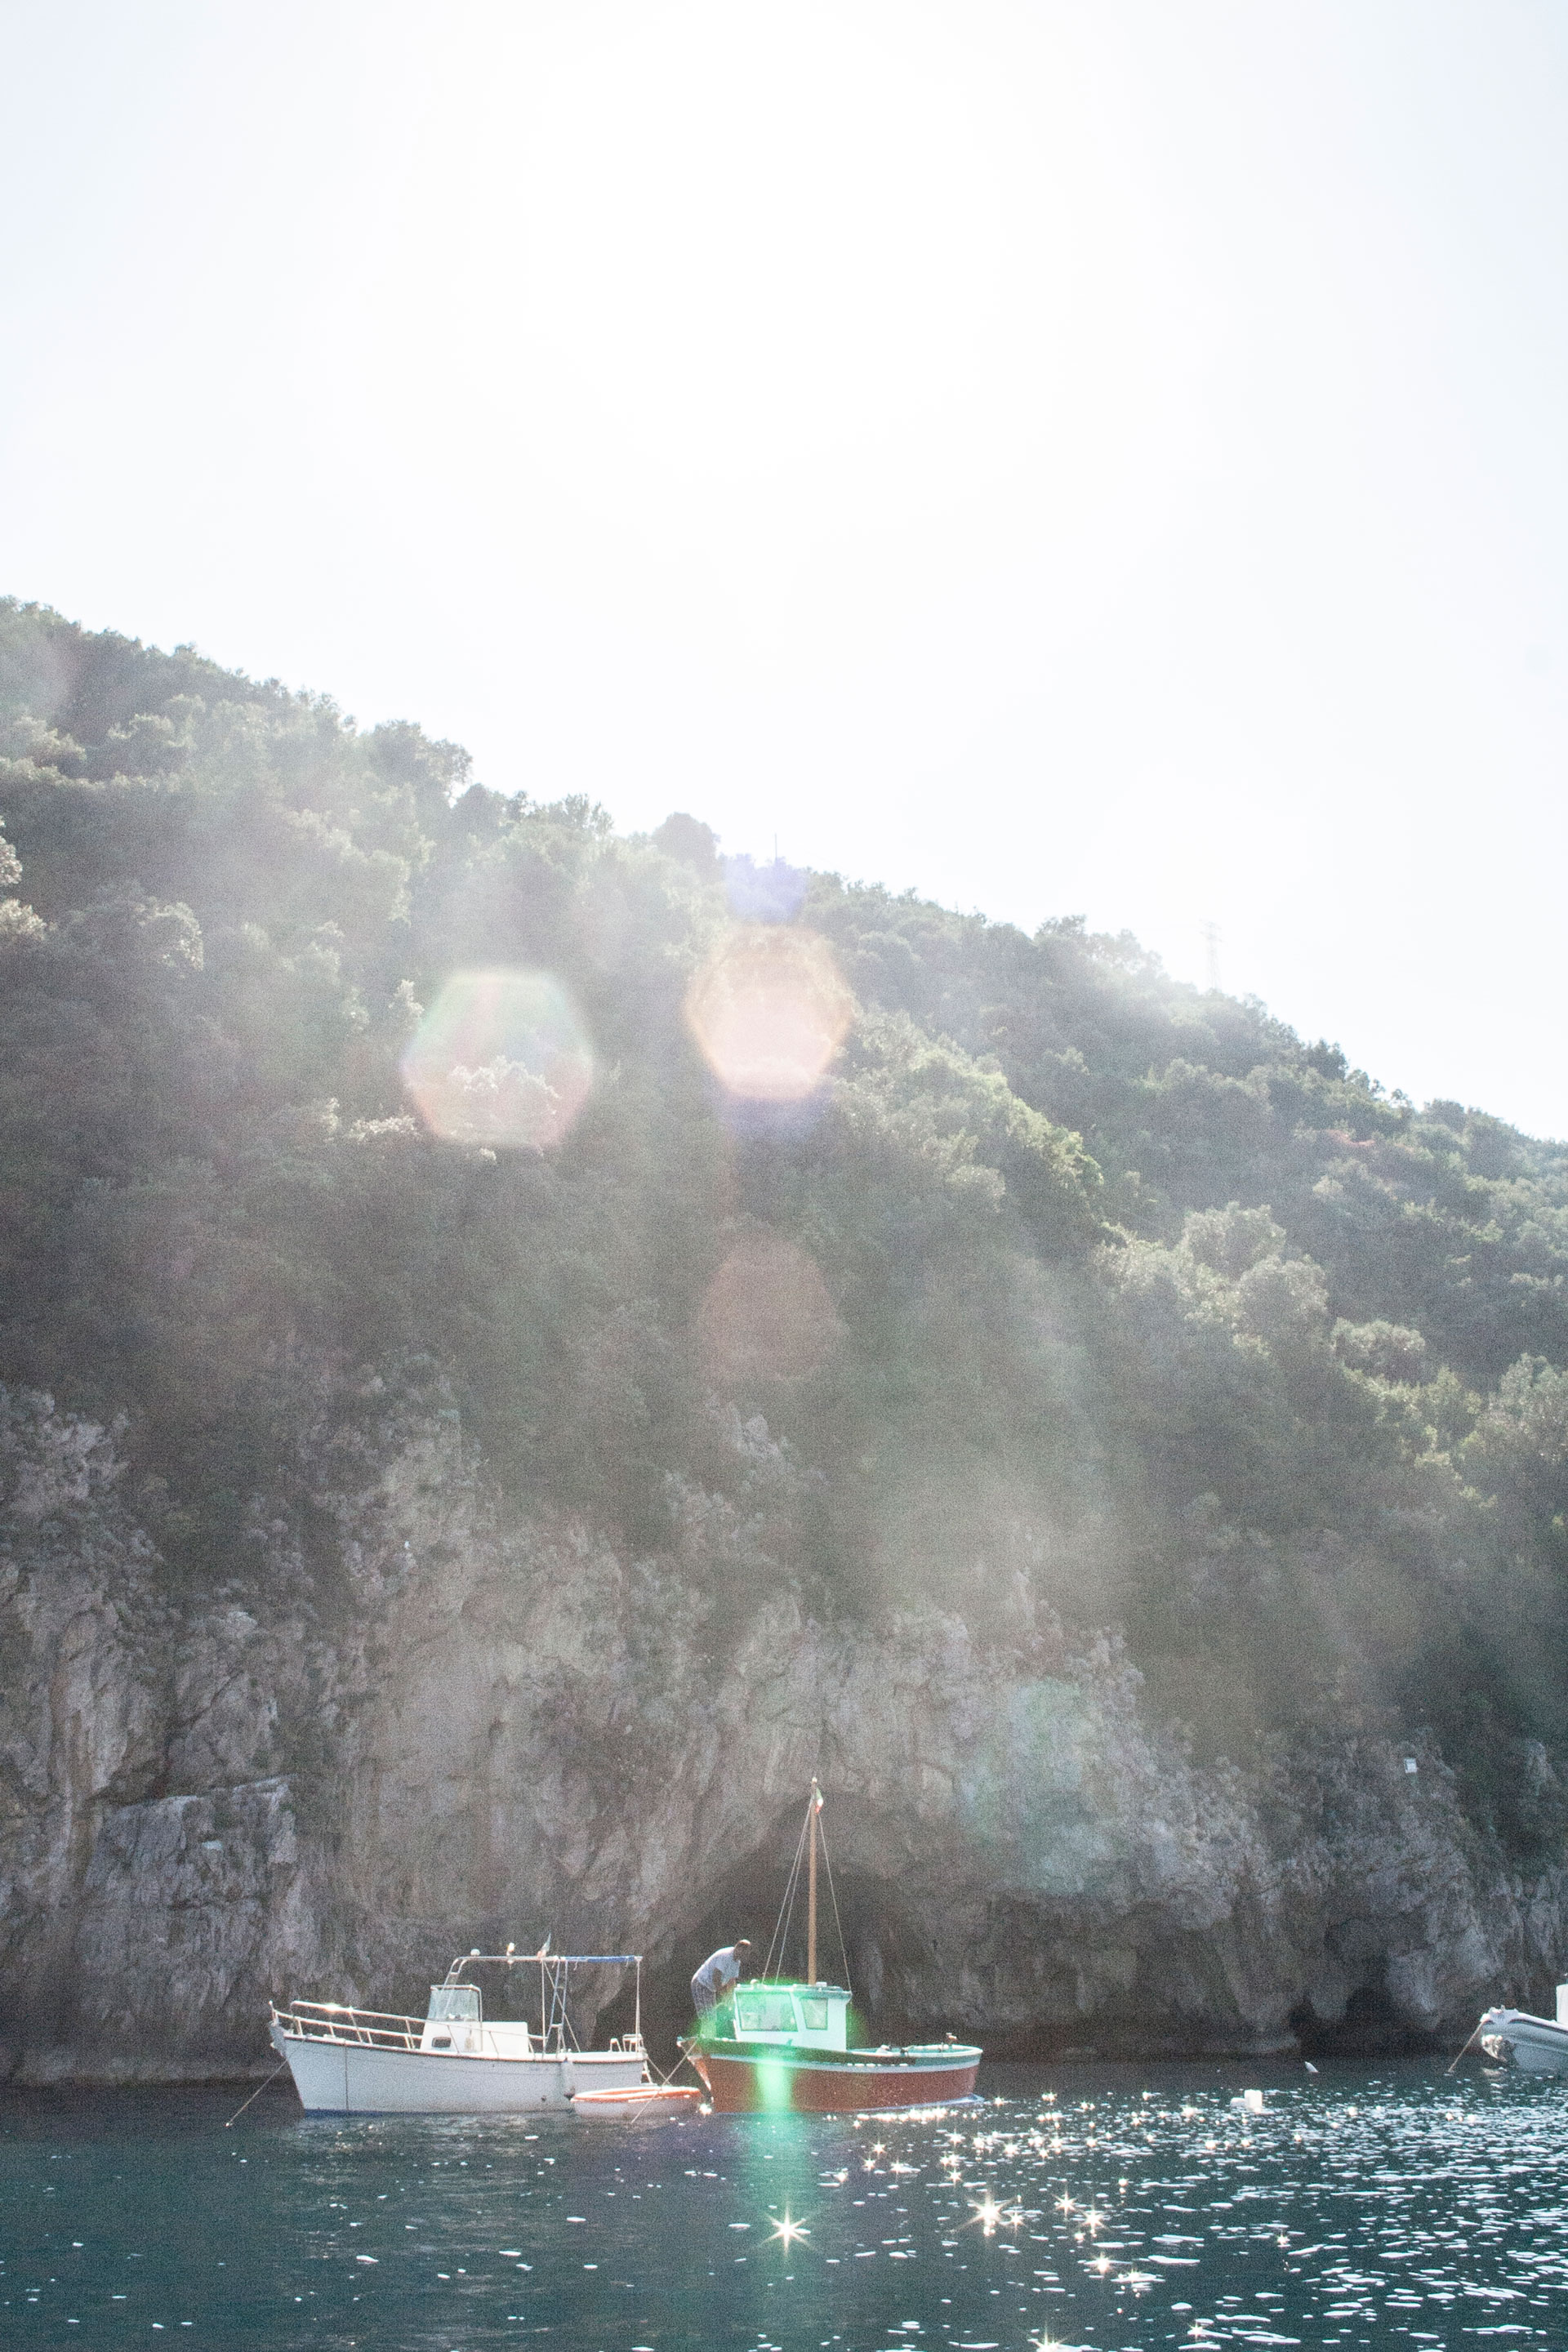 Photograph-by-Miriam-McWilliam-Studio-Mimi-Moon ITALY AMALFI COAST POSITANO SORRENTO ROME FINE ART PHOTOGRAPHIC PRINT